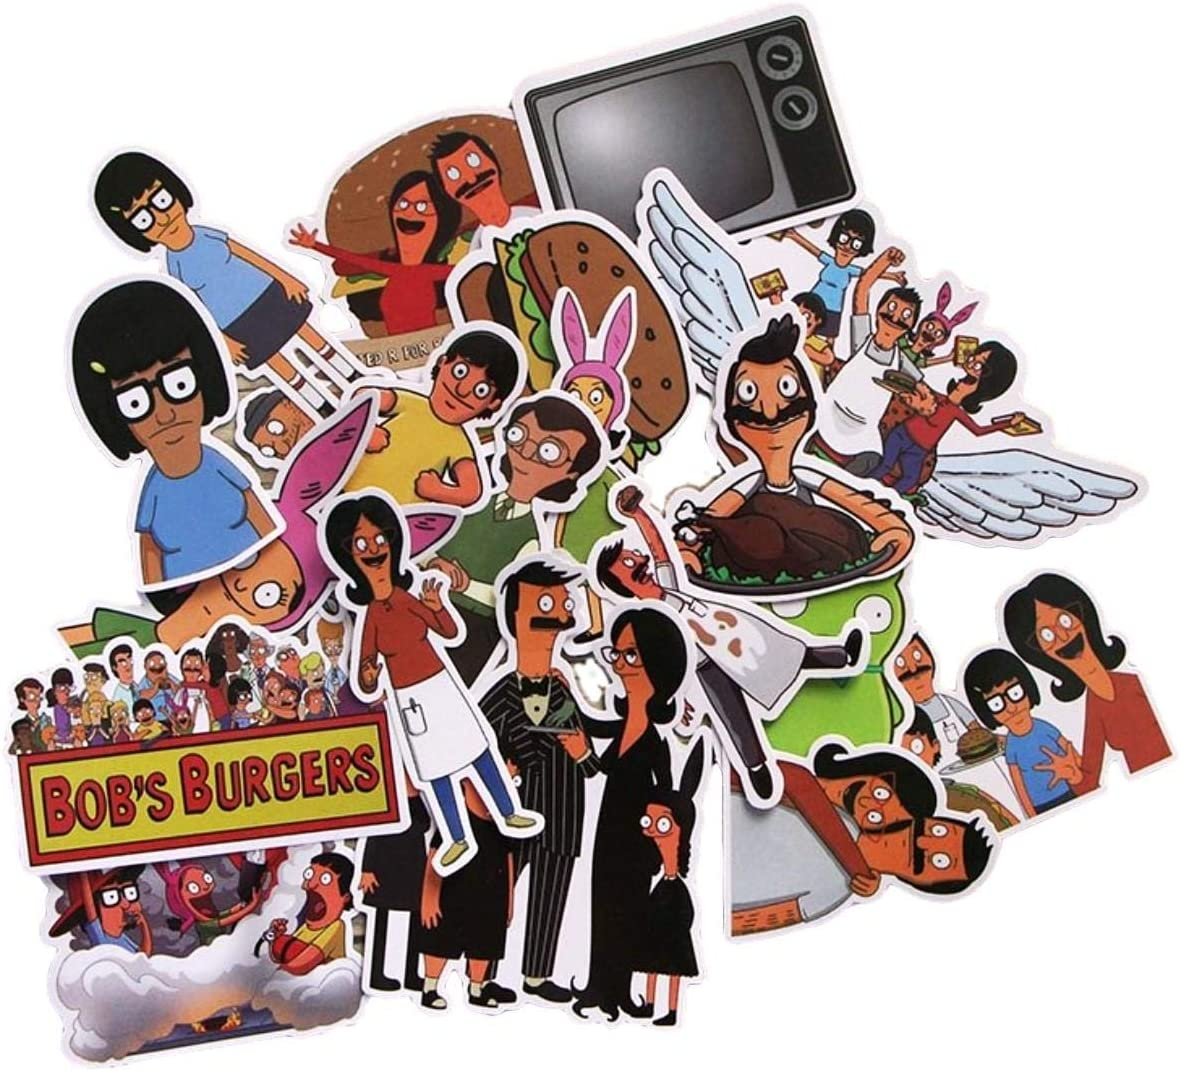 Cartoon Show Themed Bob's Burgers 21 Piece Sticker Decal Set for Kids Adults - Laptop Motorcycle Skateboard Decals